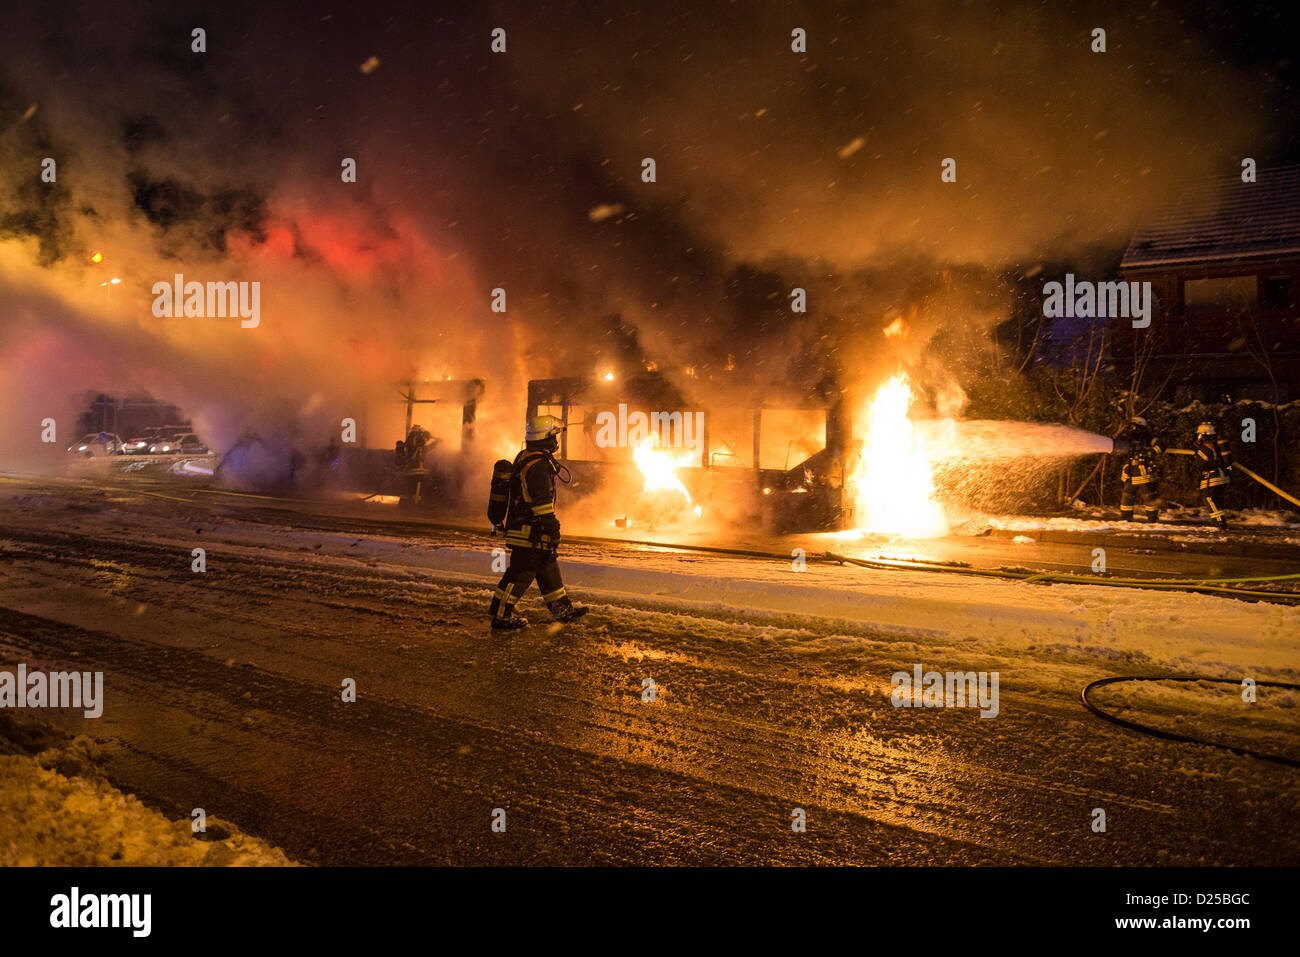 Firemen extinguish a burning bus in Flensburg, Germany, 14 January 2013. According to police reports, no one was - Stock Image